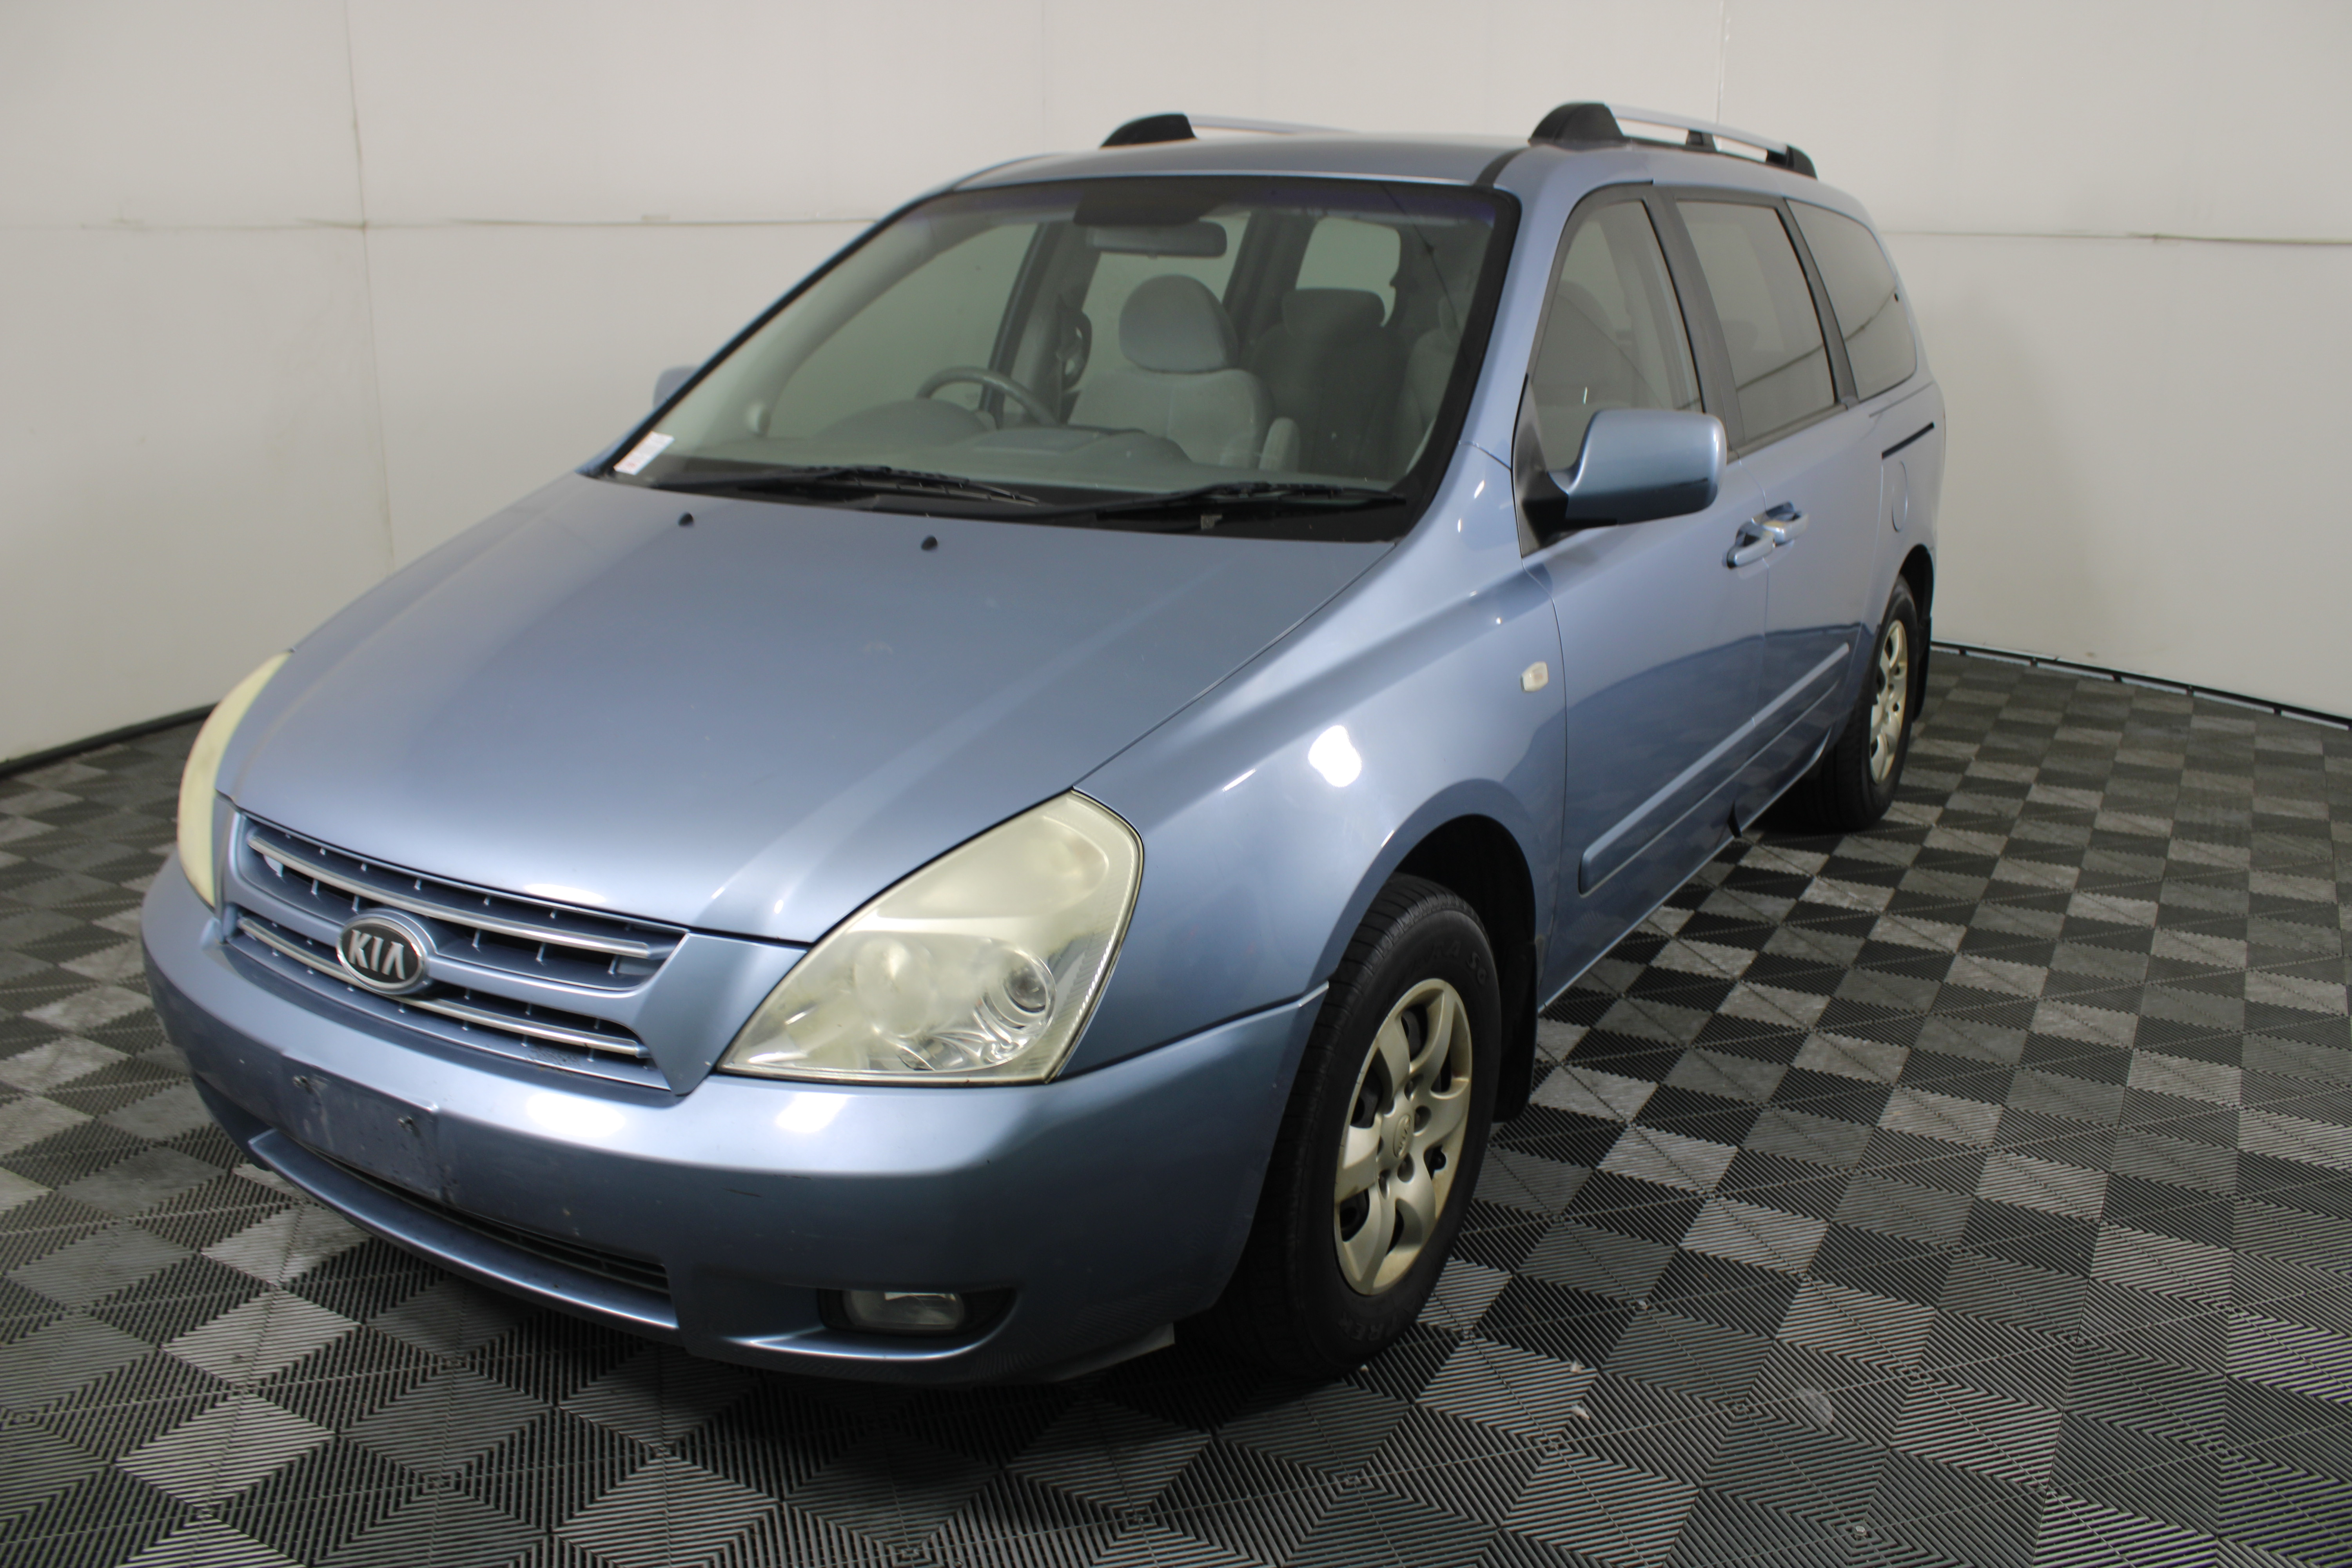 2007 Kia Grand Carnival EX VQ Automatic 8 Seater